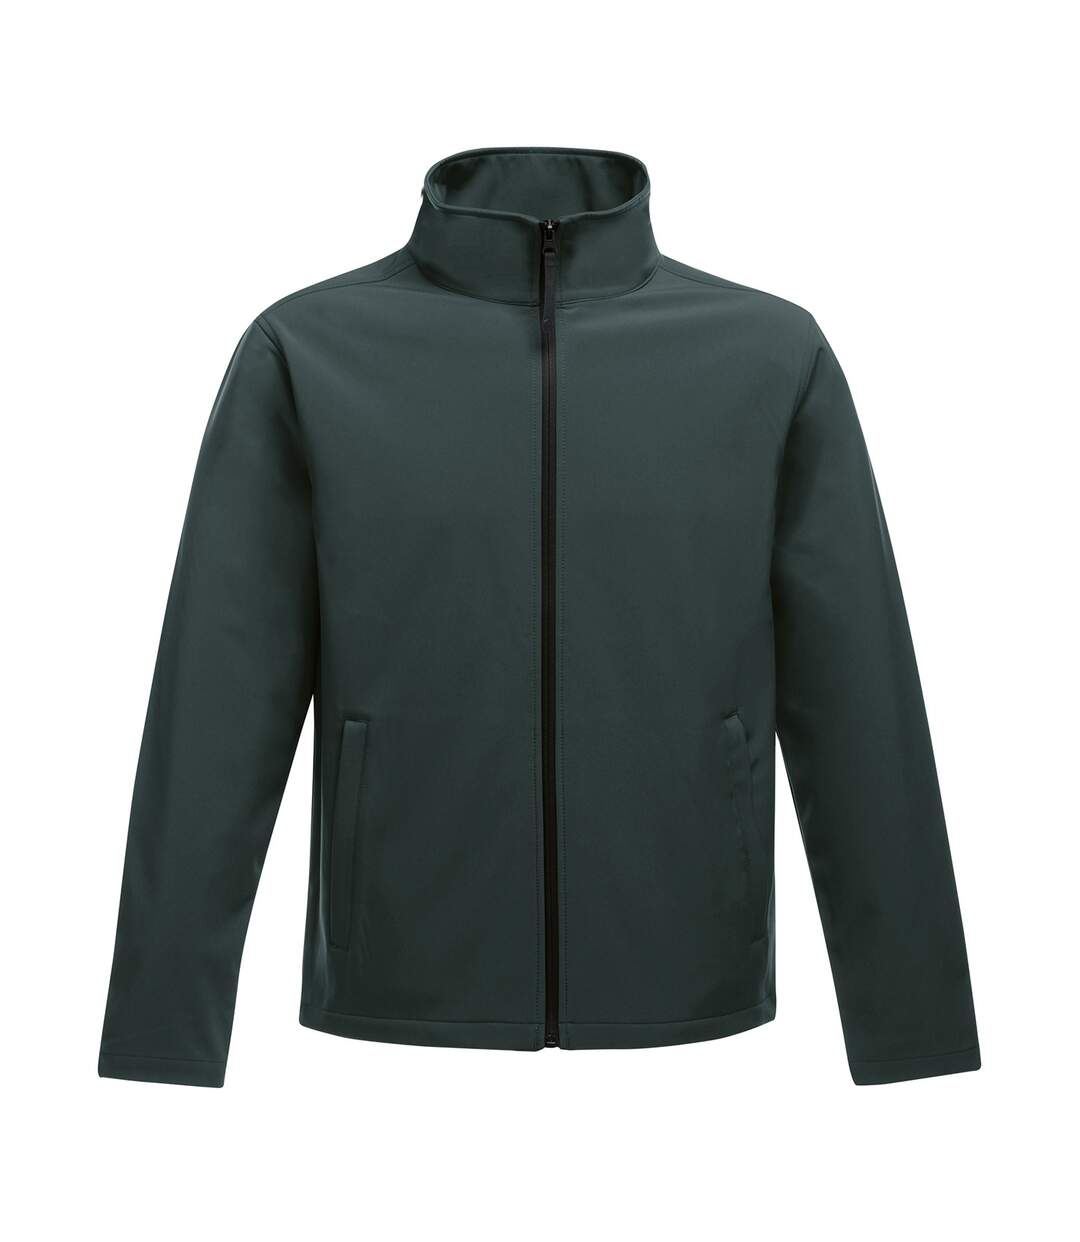 Regatta Standout Mens Ablaze Printable Softshell Jacket (Seal/Black) - UTRW6353